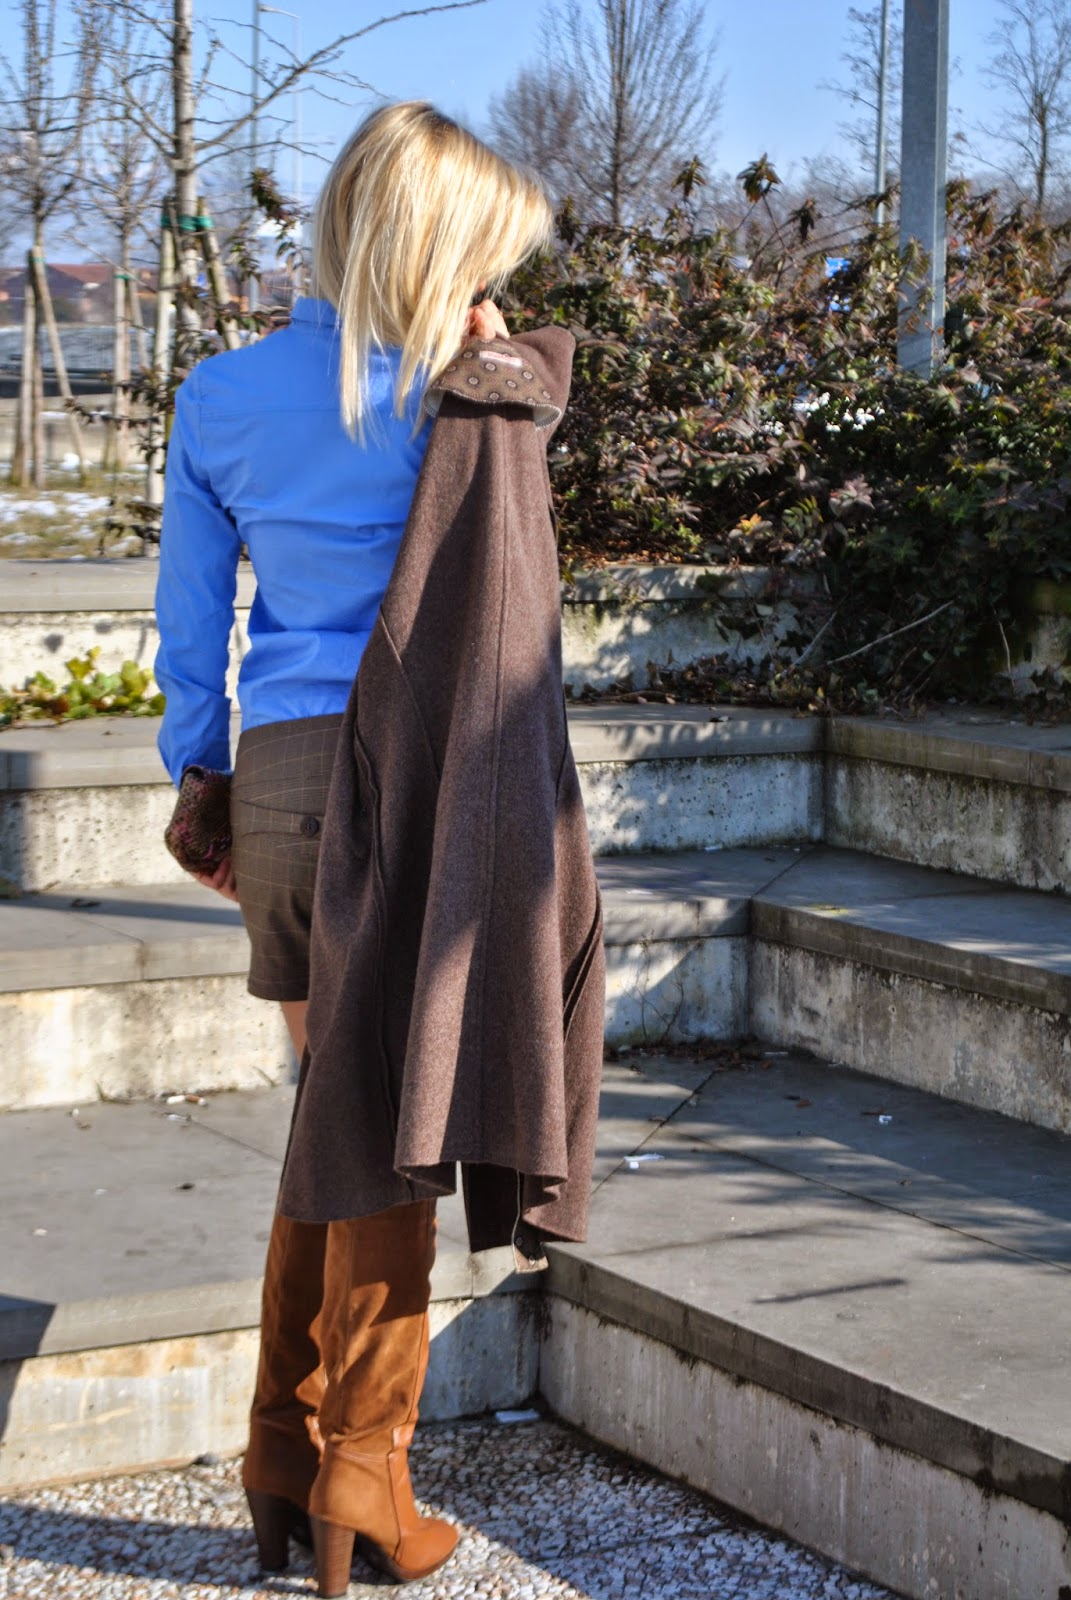 outfit cappotto marrone cappotto in lana cotta come abbinare il marrone stivali marroni outfit shorts outfit shorts inverno outfit camicia azzurra come abbinare gli shorts in inverno abbinamenti camicia abbinamenti marrone come abbinare il marrone borsa lobra pitonata how to wear brown wool brown coat cappotto fattori fashion blogger italiane mariafelicia magno colorblock by felym fattori italia mariafelicia magno fashion blogger blog di moda italiani blogger italiane di moda ragazze bionde orecchini a cuore collana a forma di chiavi borsa lobra lobra bag outfit invernali outfit febbraio 2015 winter outfits fashion bloggers italy girls blondie blonde girls